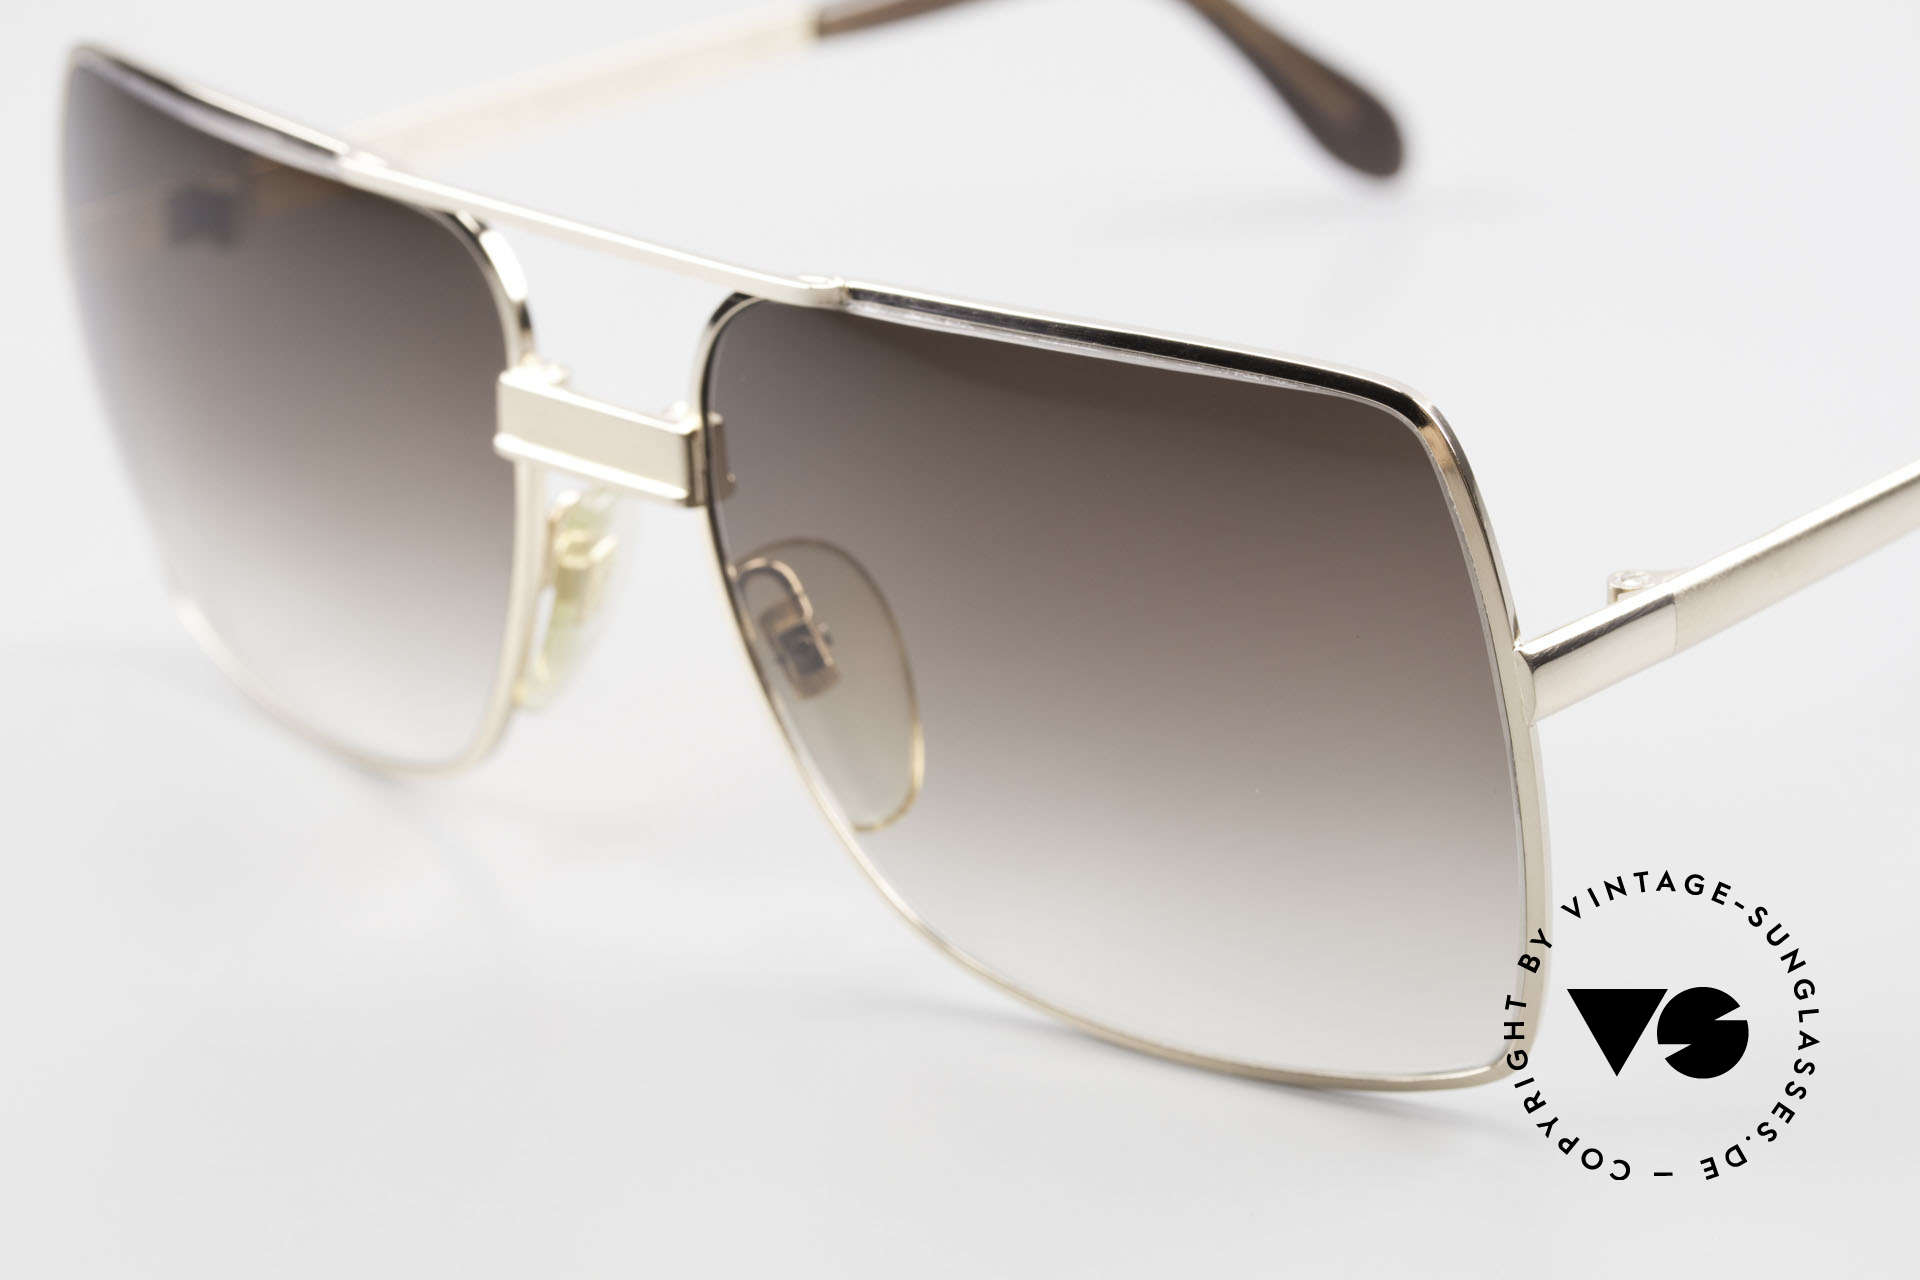 Neostyle Office 10 Gold Filled 70's Sunglasses, a true rarity and actually invaluable (collector's item), Made for Men